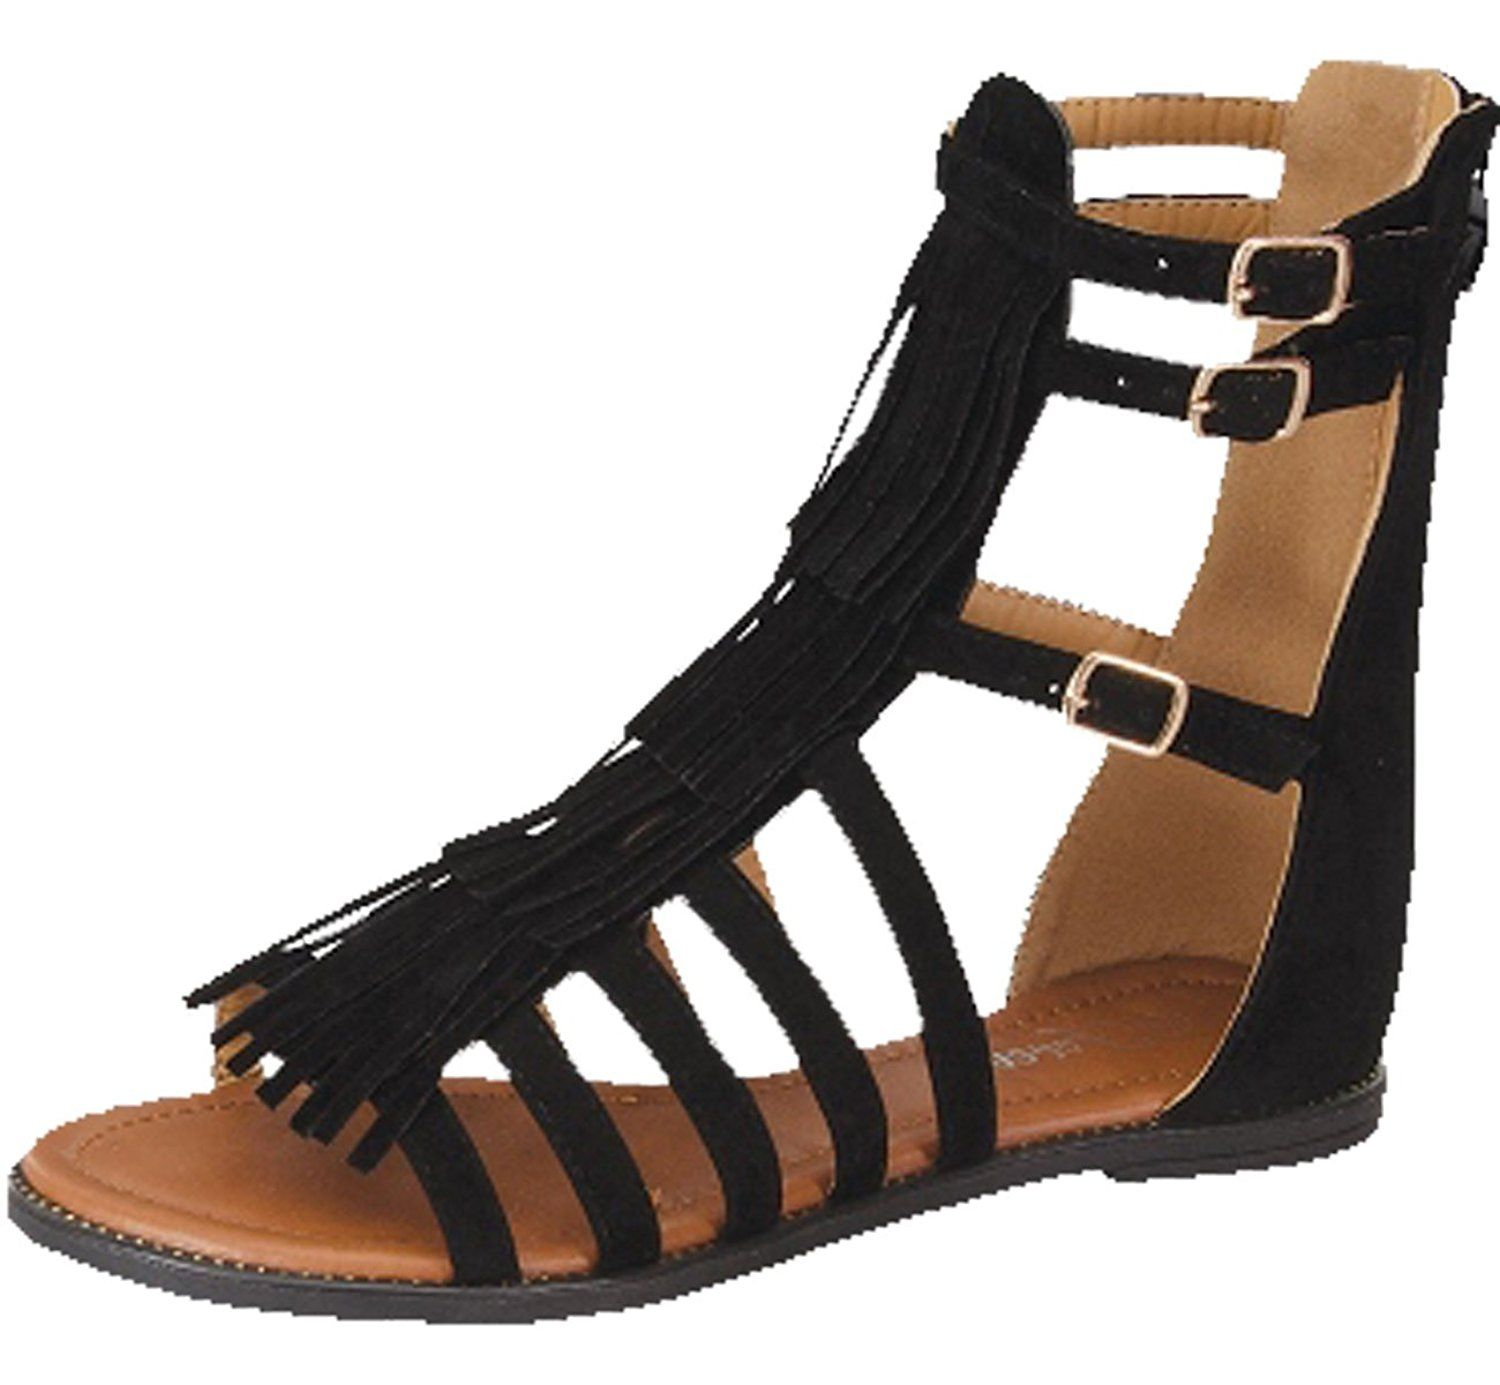 1434e6a9d18d Forever Link Women s Katia-51 Gladiator Fringe Tassel Flat Sandals --  Startling review available